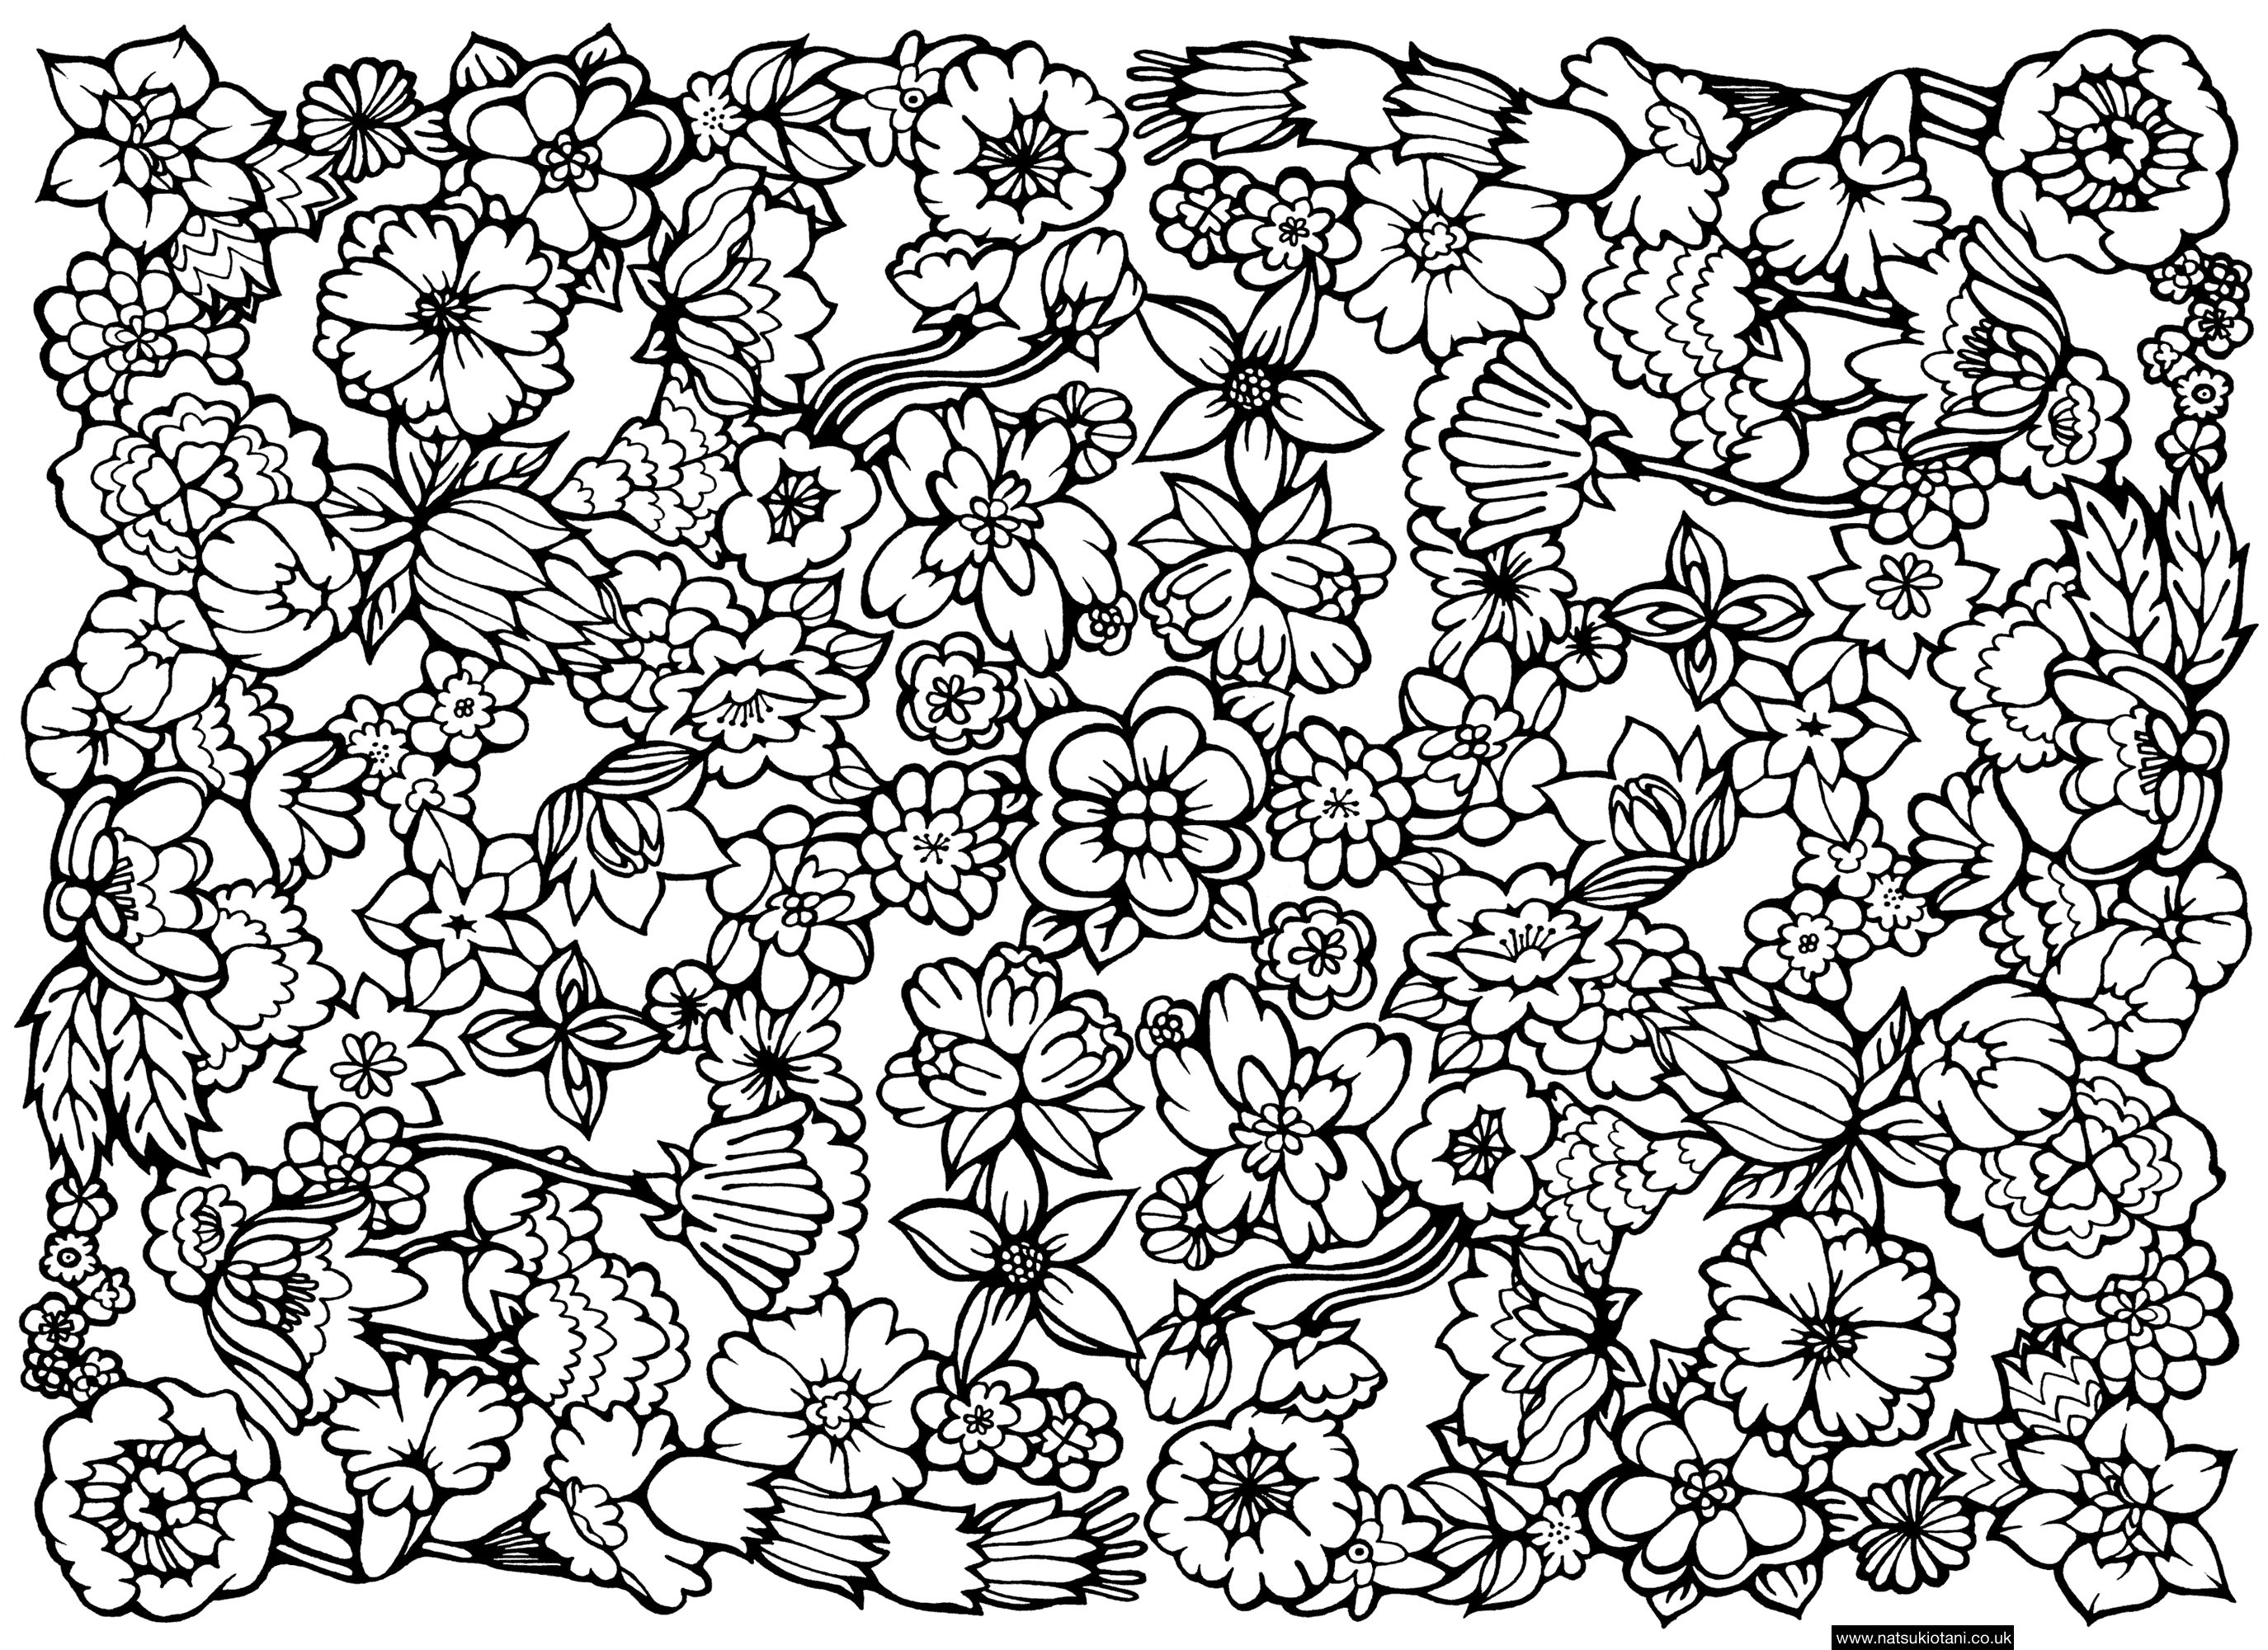 patterned coloring pages quilt coloring pages to download and print for free patterned coloring pages